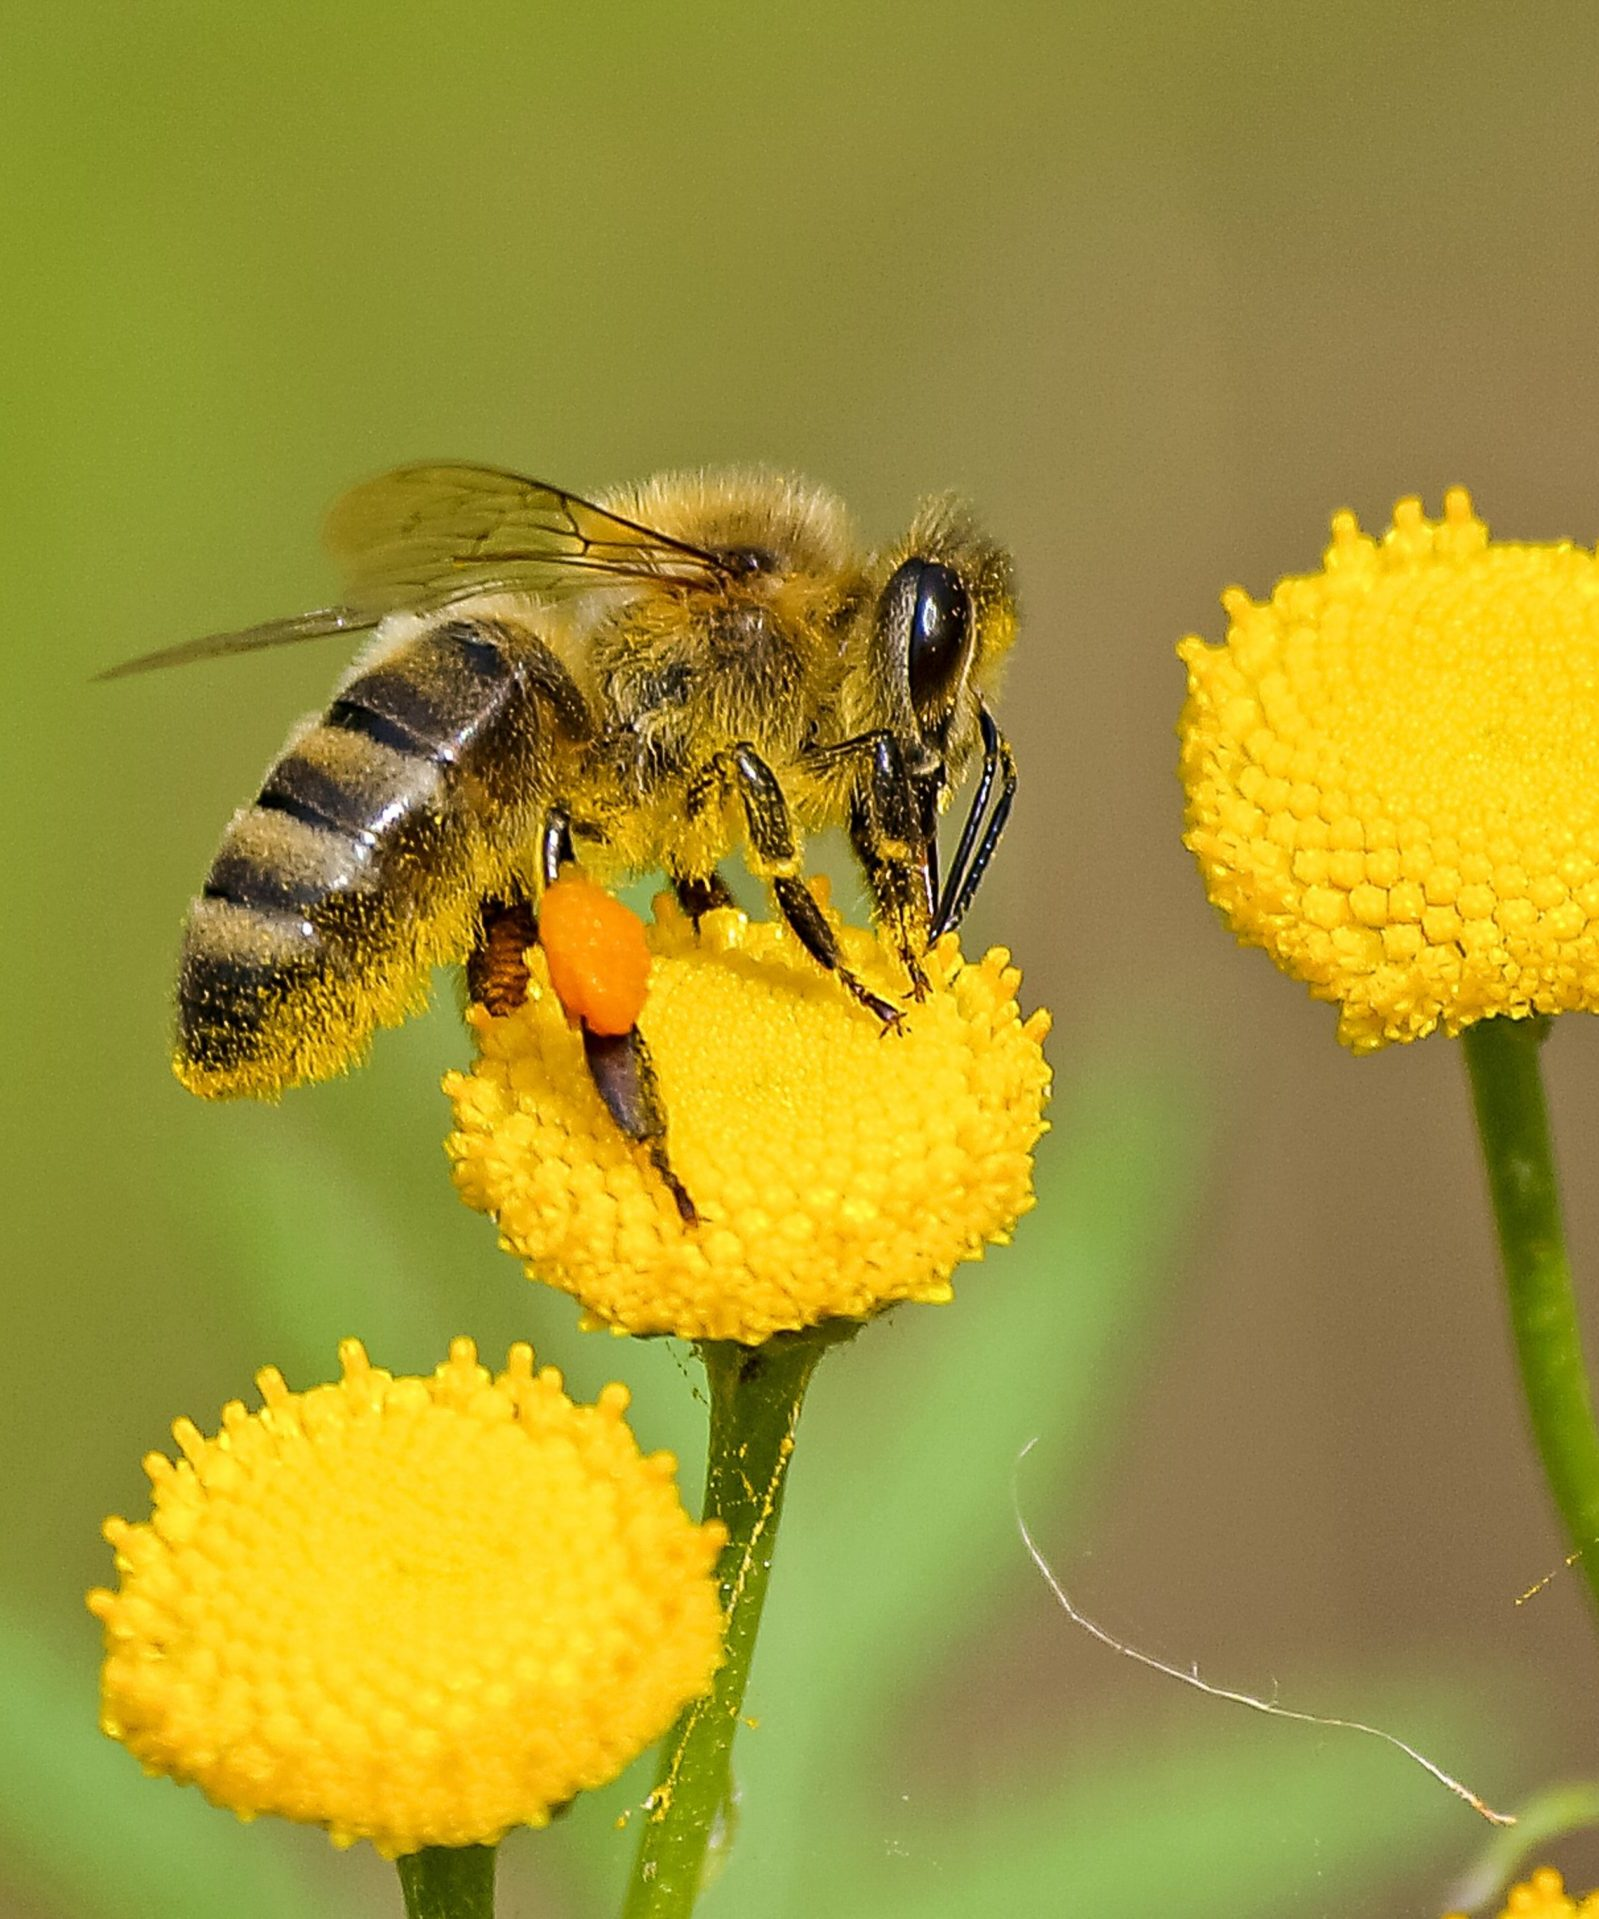 A bee feeds on a small yellow flower in the sun